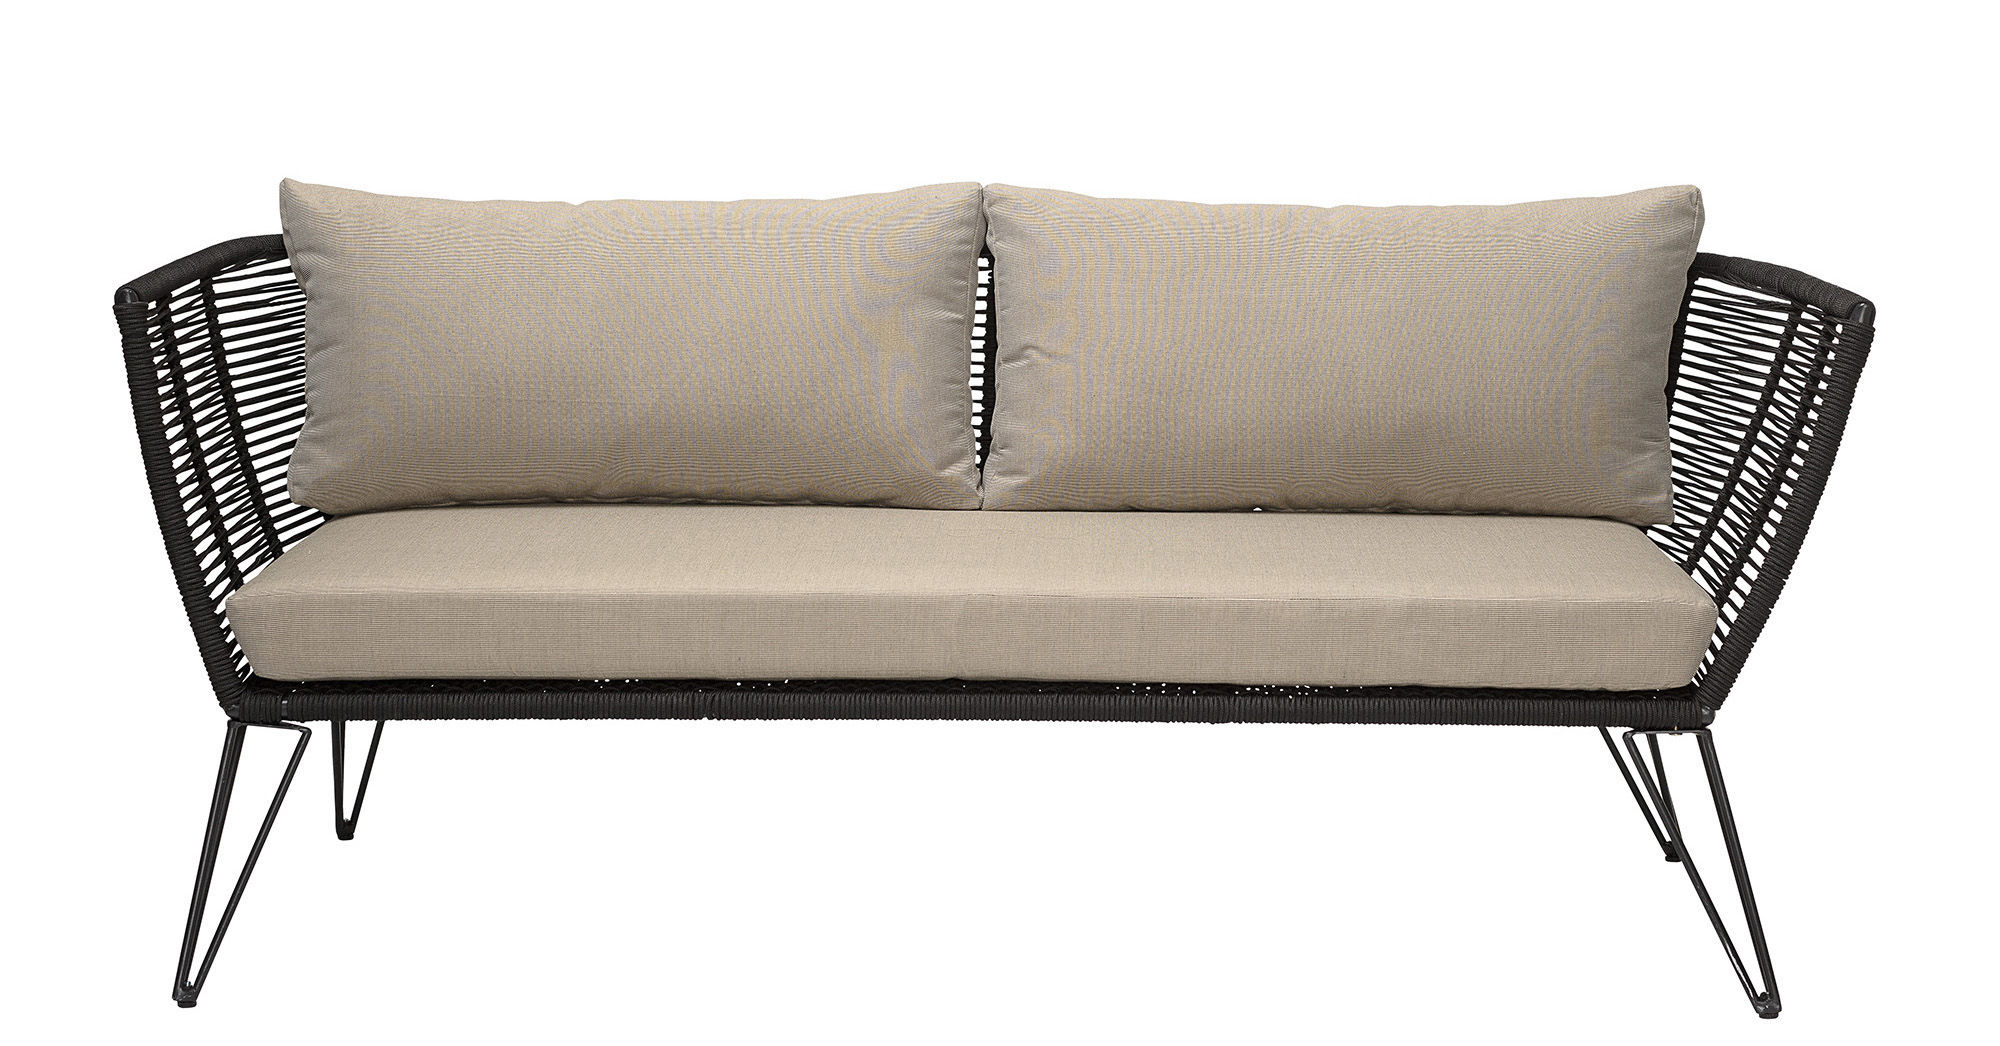 Furniture - Sofas - Mundo Straight sofa - / L 175 cm - Indoors & outdoors by Bloomingville - Taupe & black - Fabric, Fibre, Lacquered steel, Polyester, PVC wire